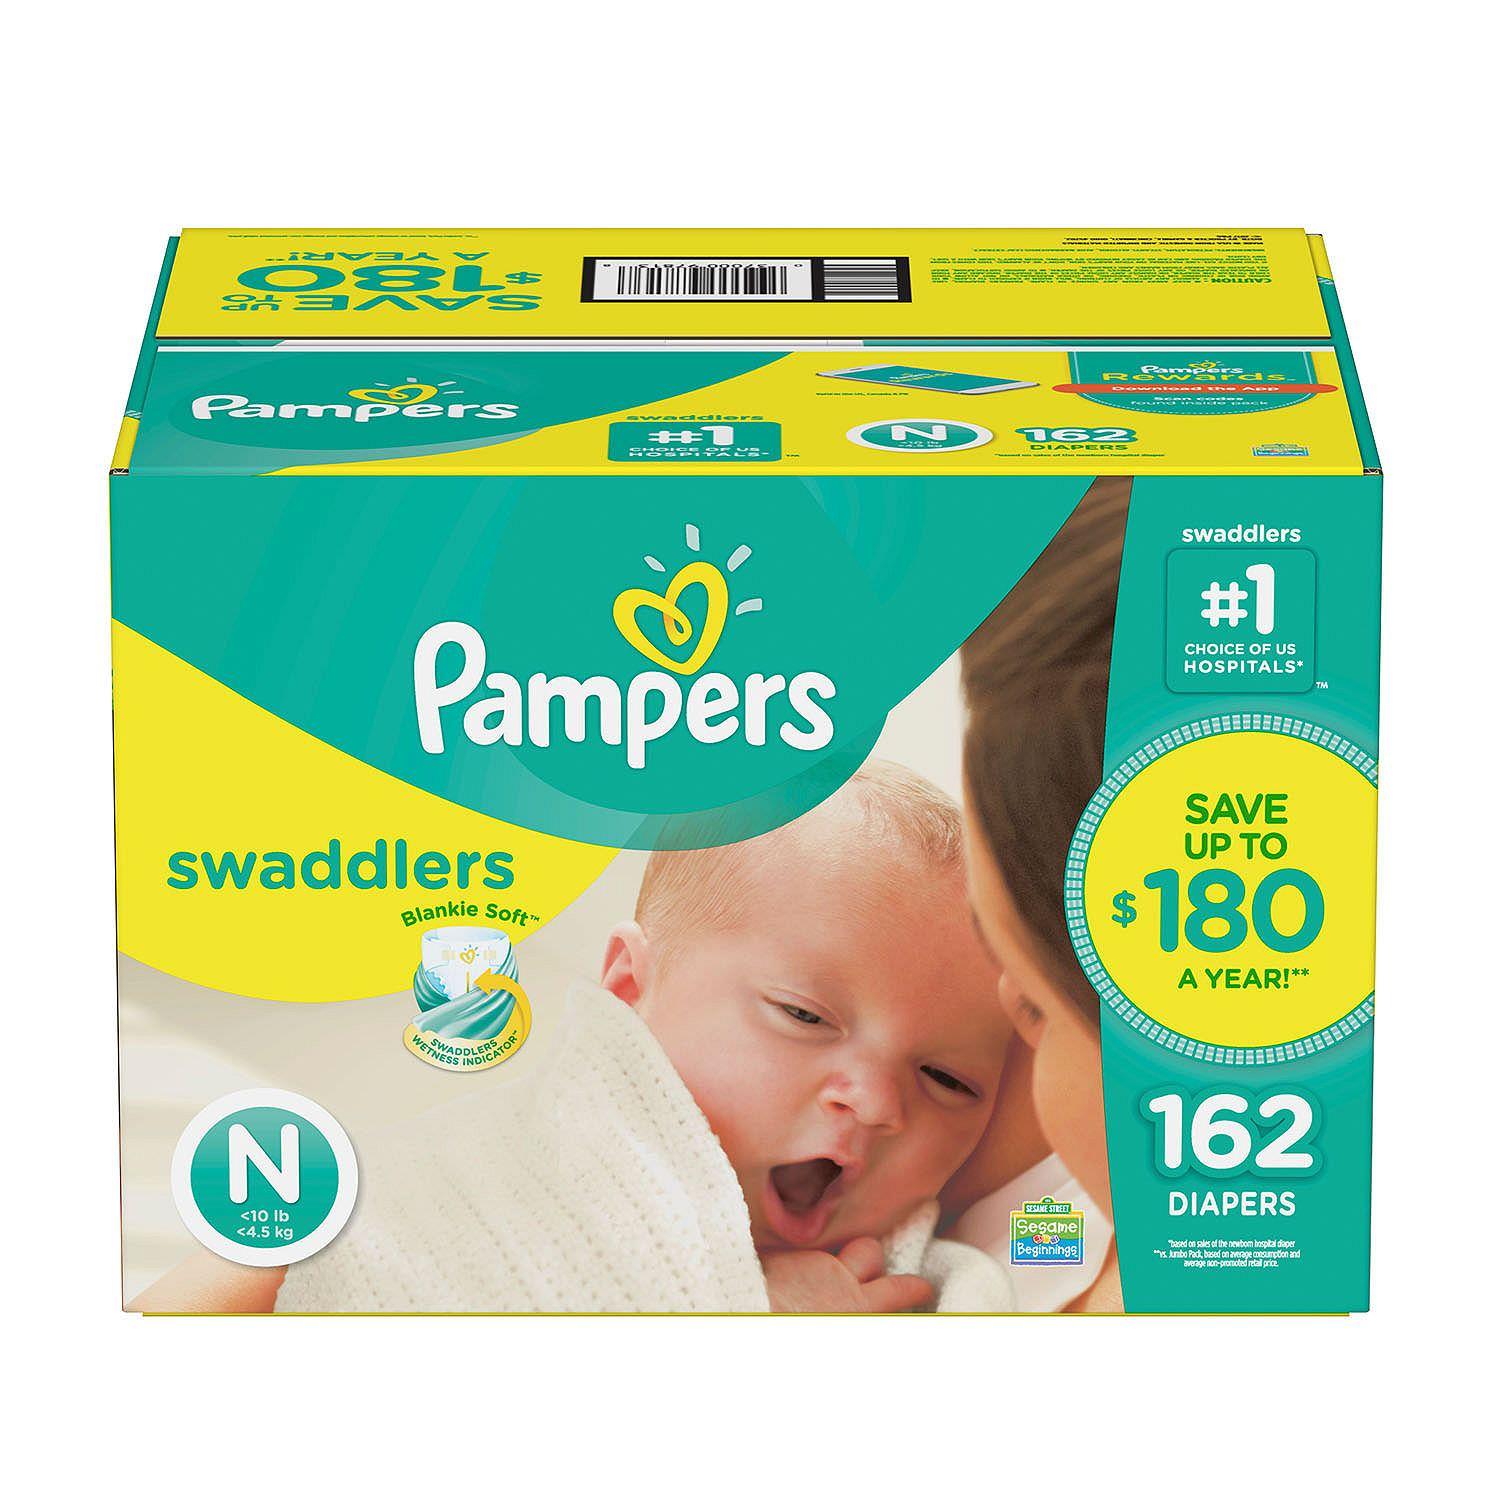 Economy Pack Pampers Swaddlers Diapers Size Newborn -162 ct. (Less than 10 lb.) by Unbranded